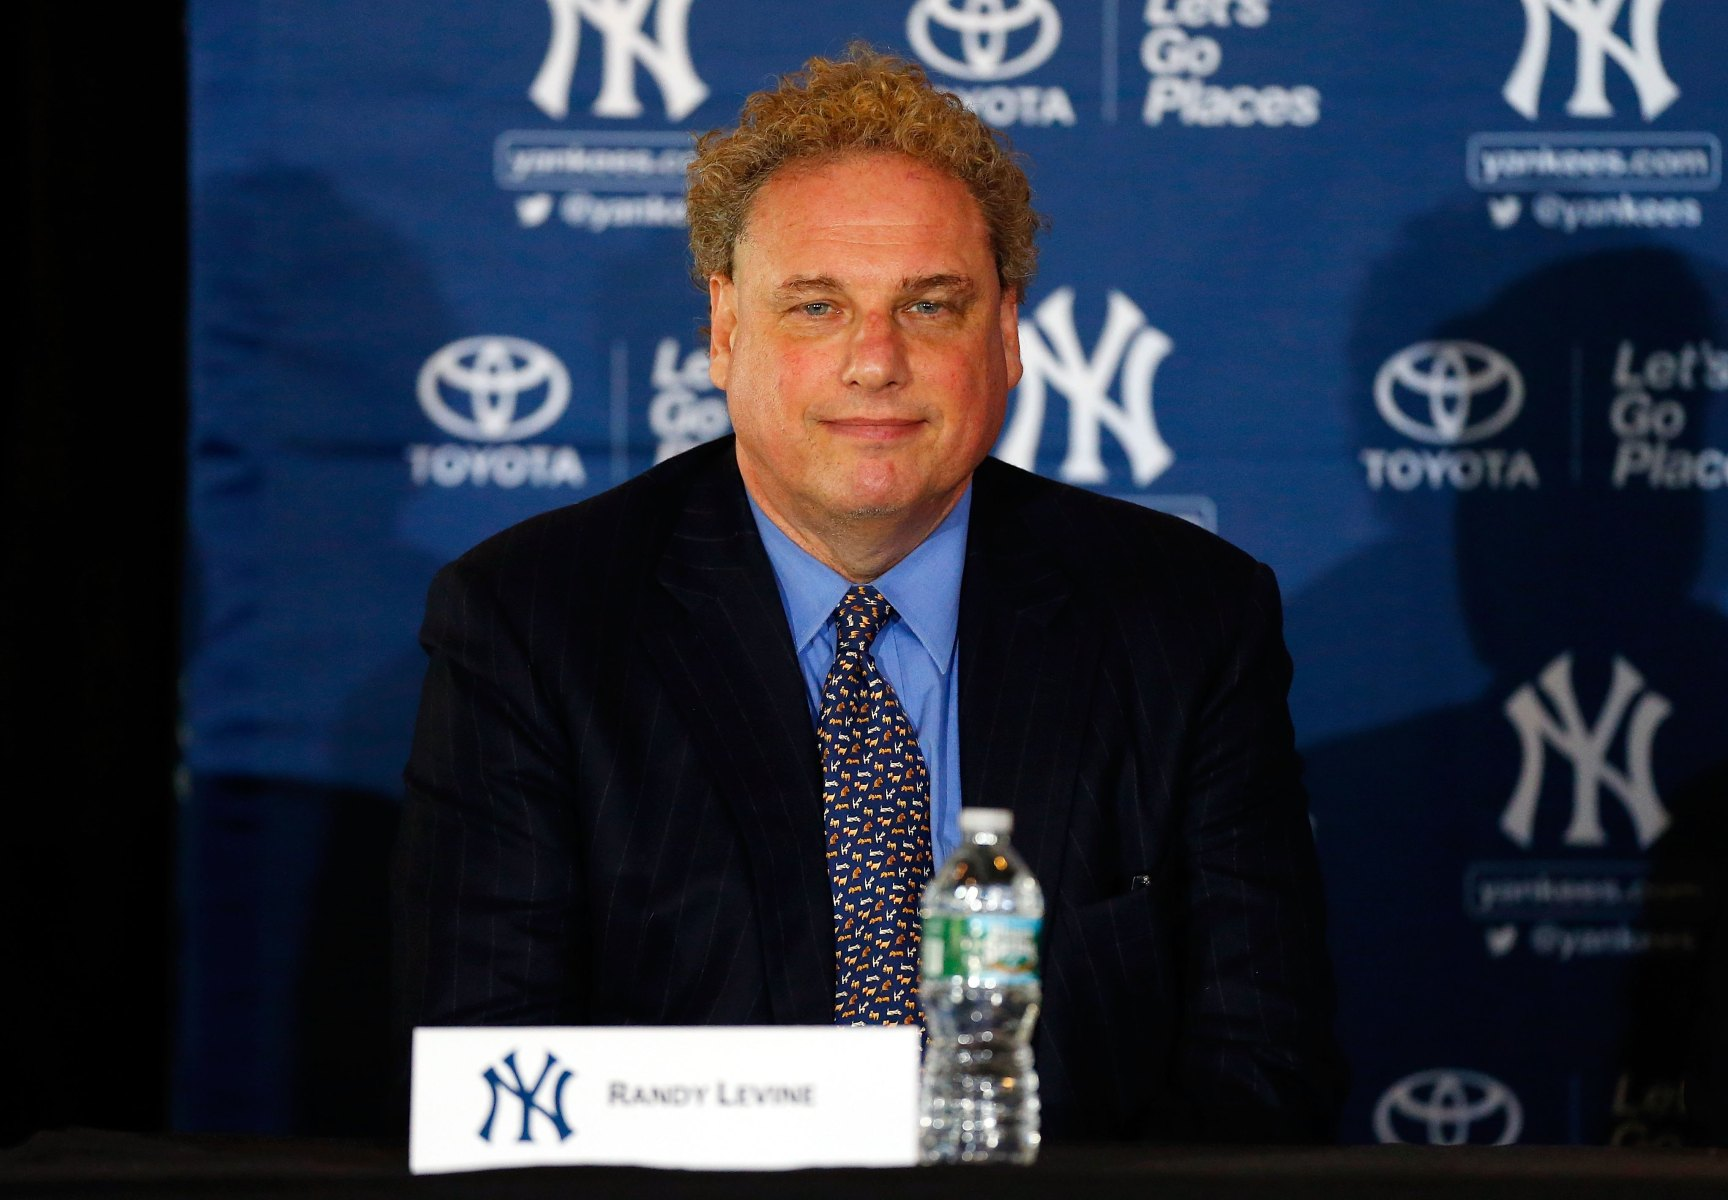 President Randy Levine of the New York Yankees looks on during a news conference introducing Masahiro Tanaka (not pictured) to the media on February 11, 2014 at Yankee Stadium in the Bronx borough of New York City.  (Photo by Jim McIsaac/Getty Images)